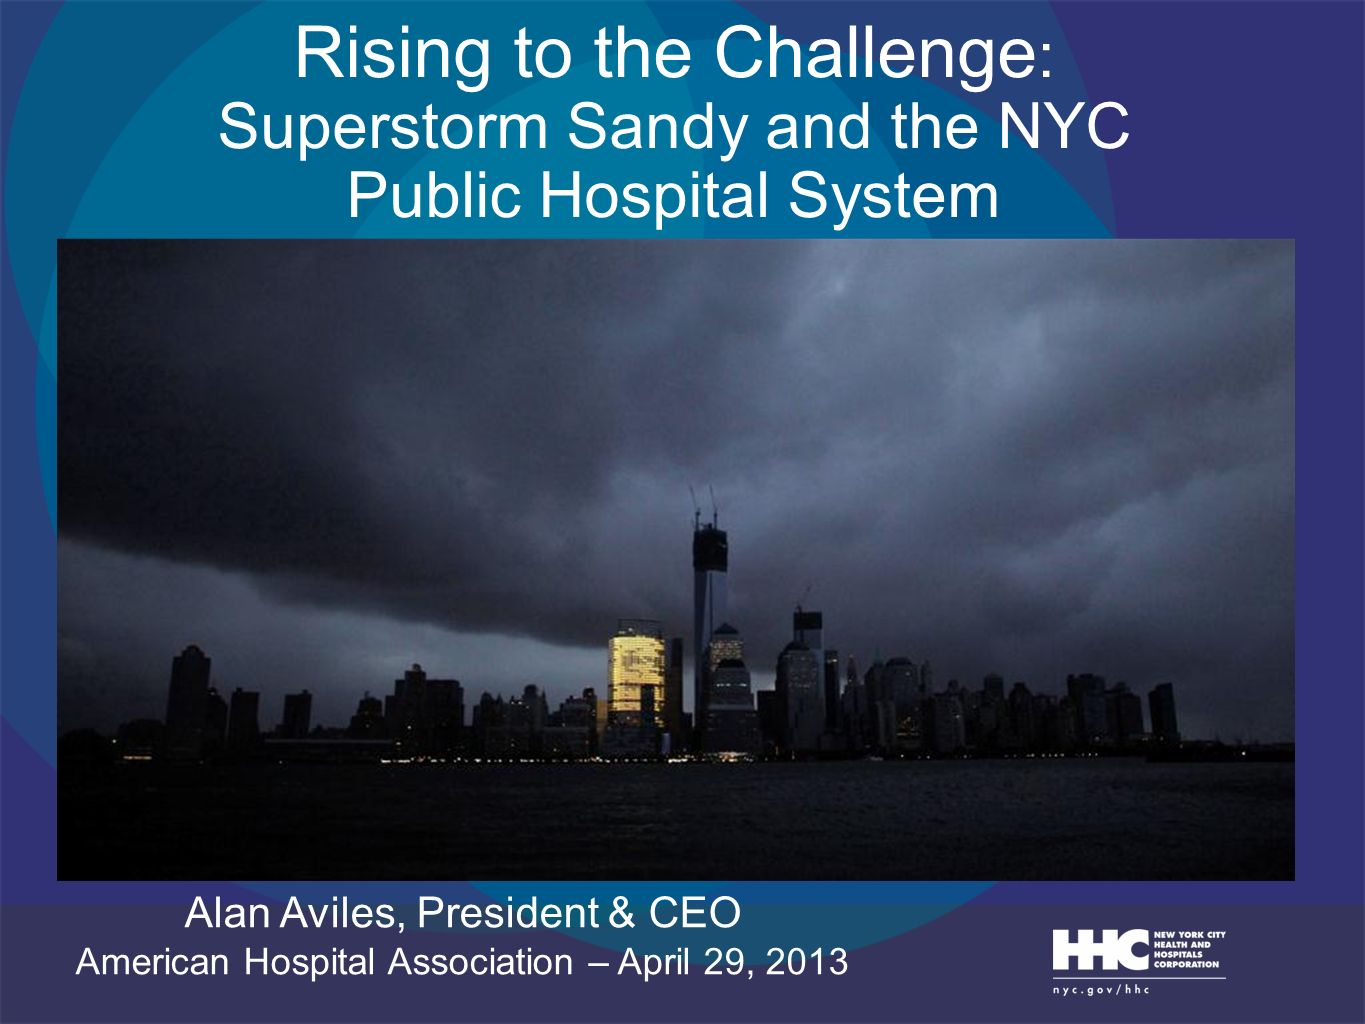 Rising to the Challenge: Superstorm Sandy and the NYC Public Hospital System